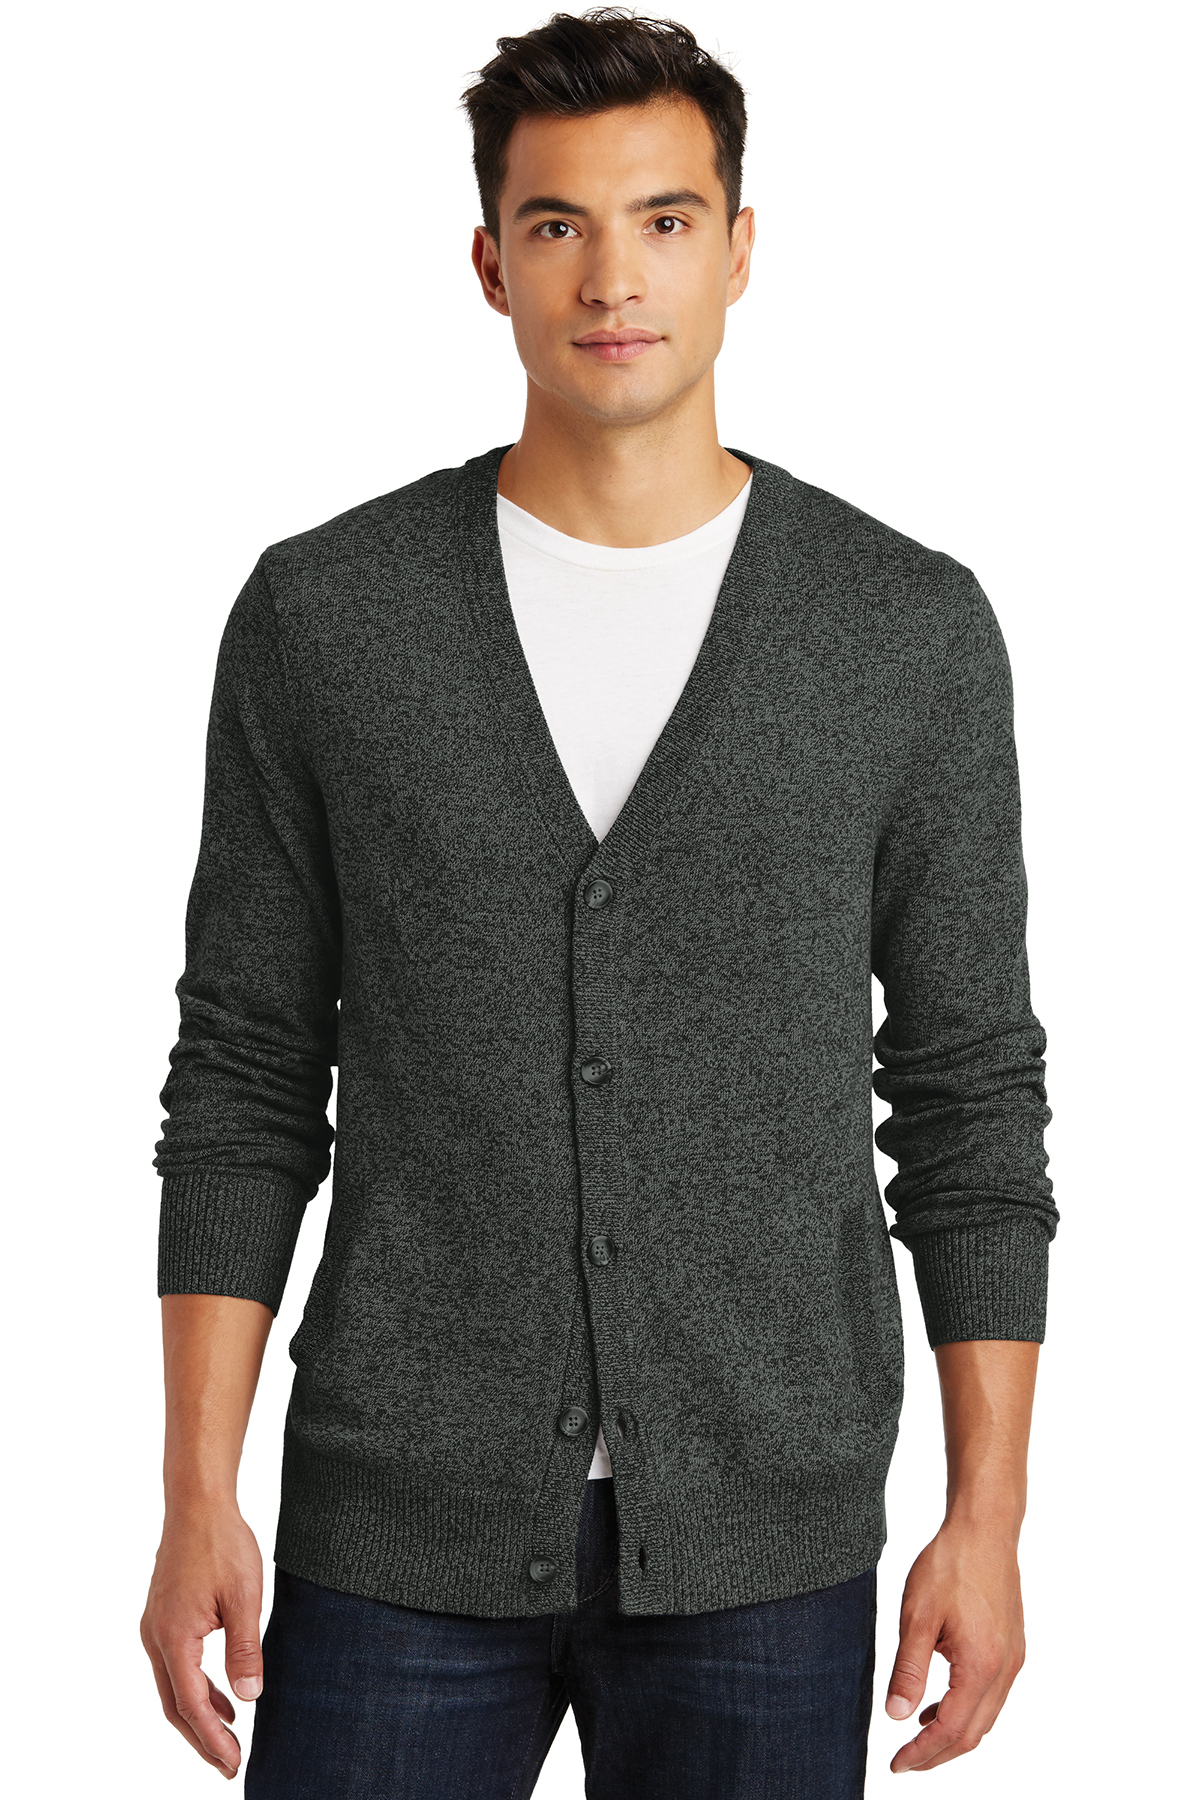 District Made - Mens Cardigan Sweater. DM315